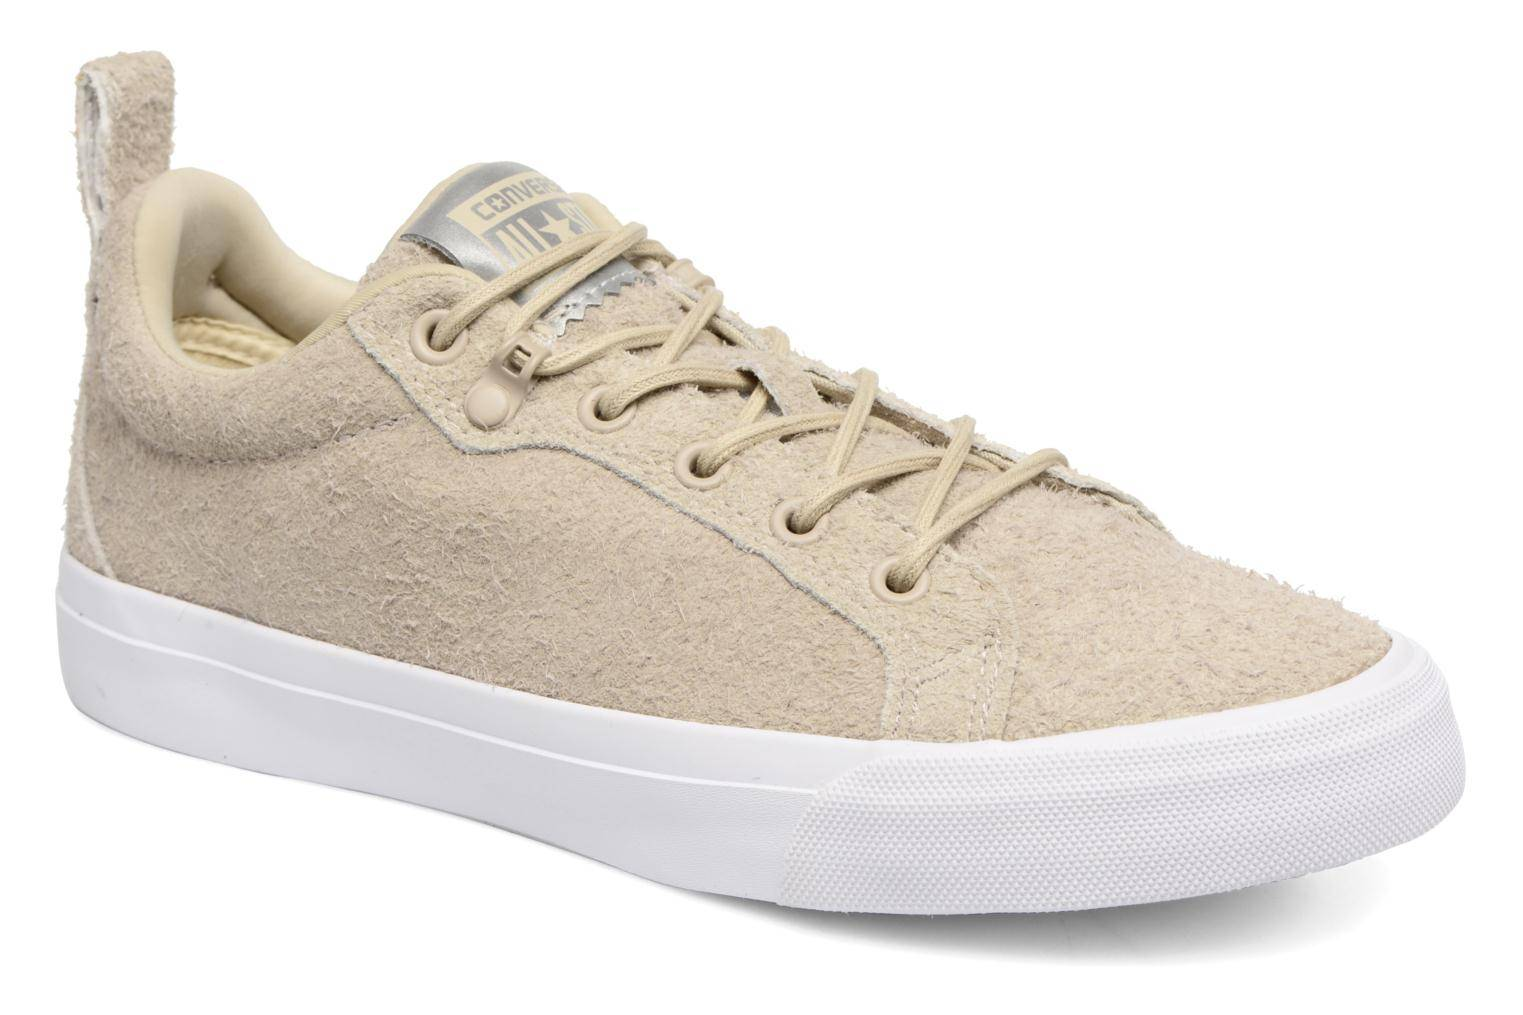 Converse - Chuck Taylor All Star Fulton Wooly Bully Ox by  - Tennarit Naisille  / Beige